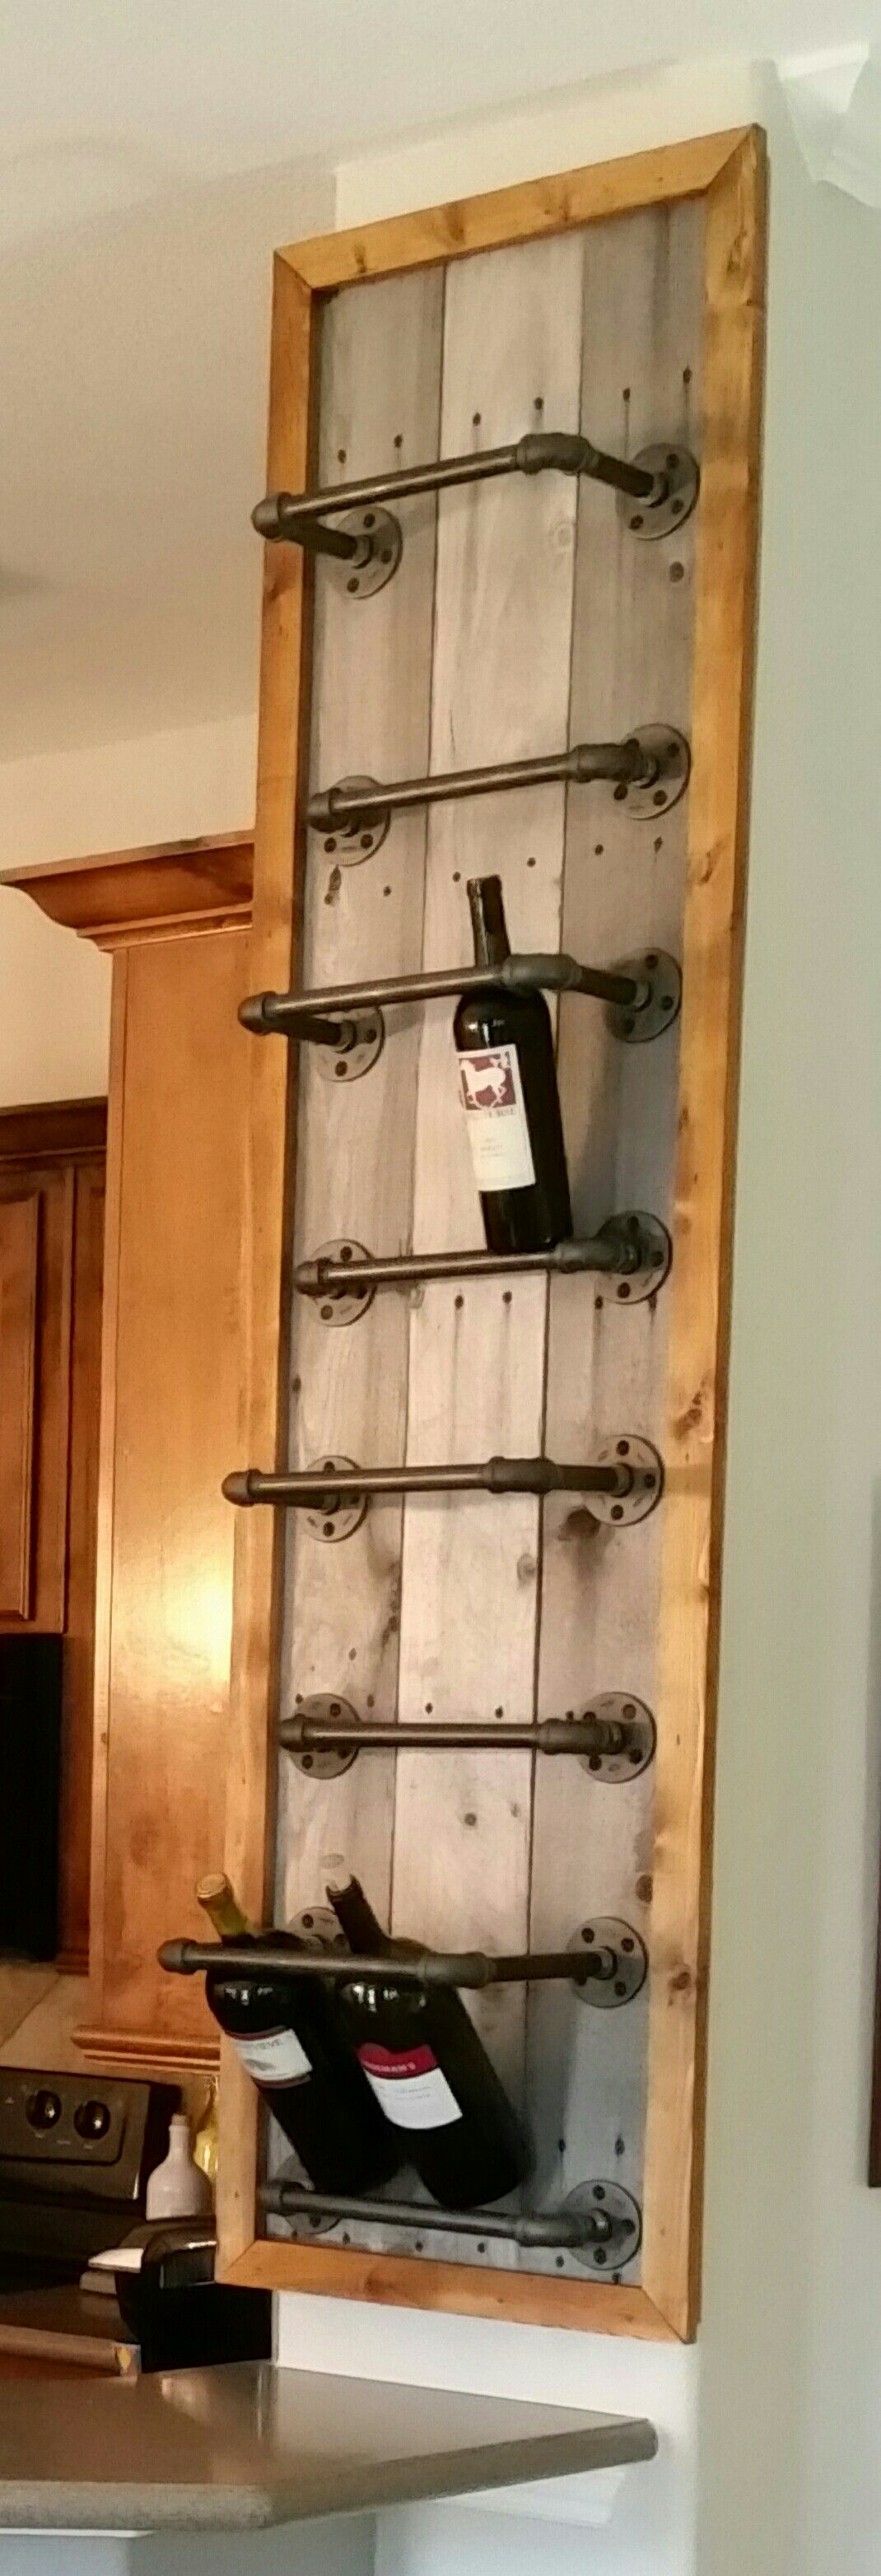 Wine Holder Ideas 22 Diy Wine Rack Ideas Offer A Unique Touch To Your Home